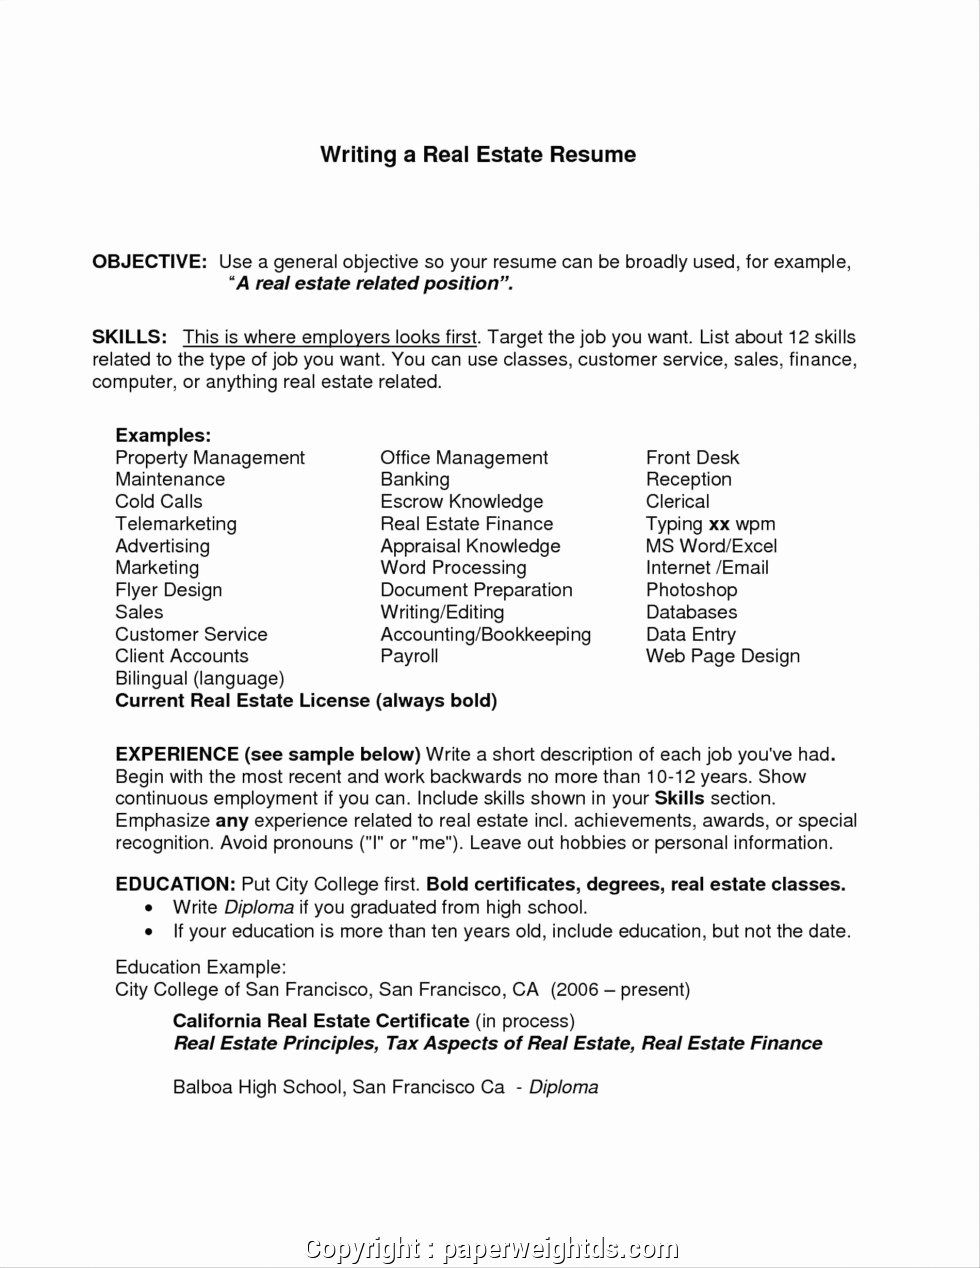 Generic Objective For Resume Elegant Simply Generic Resume Objective G Resume Objective Statement Examples Resume Objective Statement Resume Objective Examples